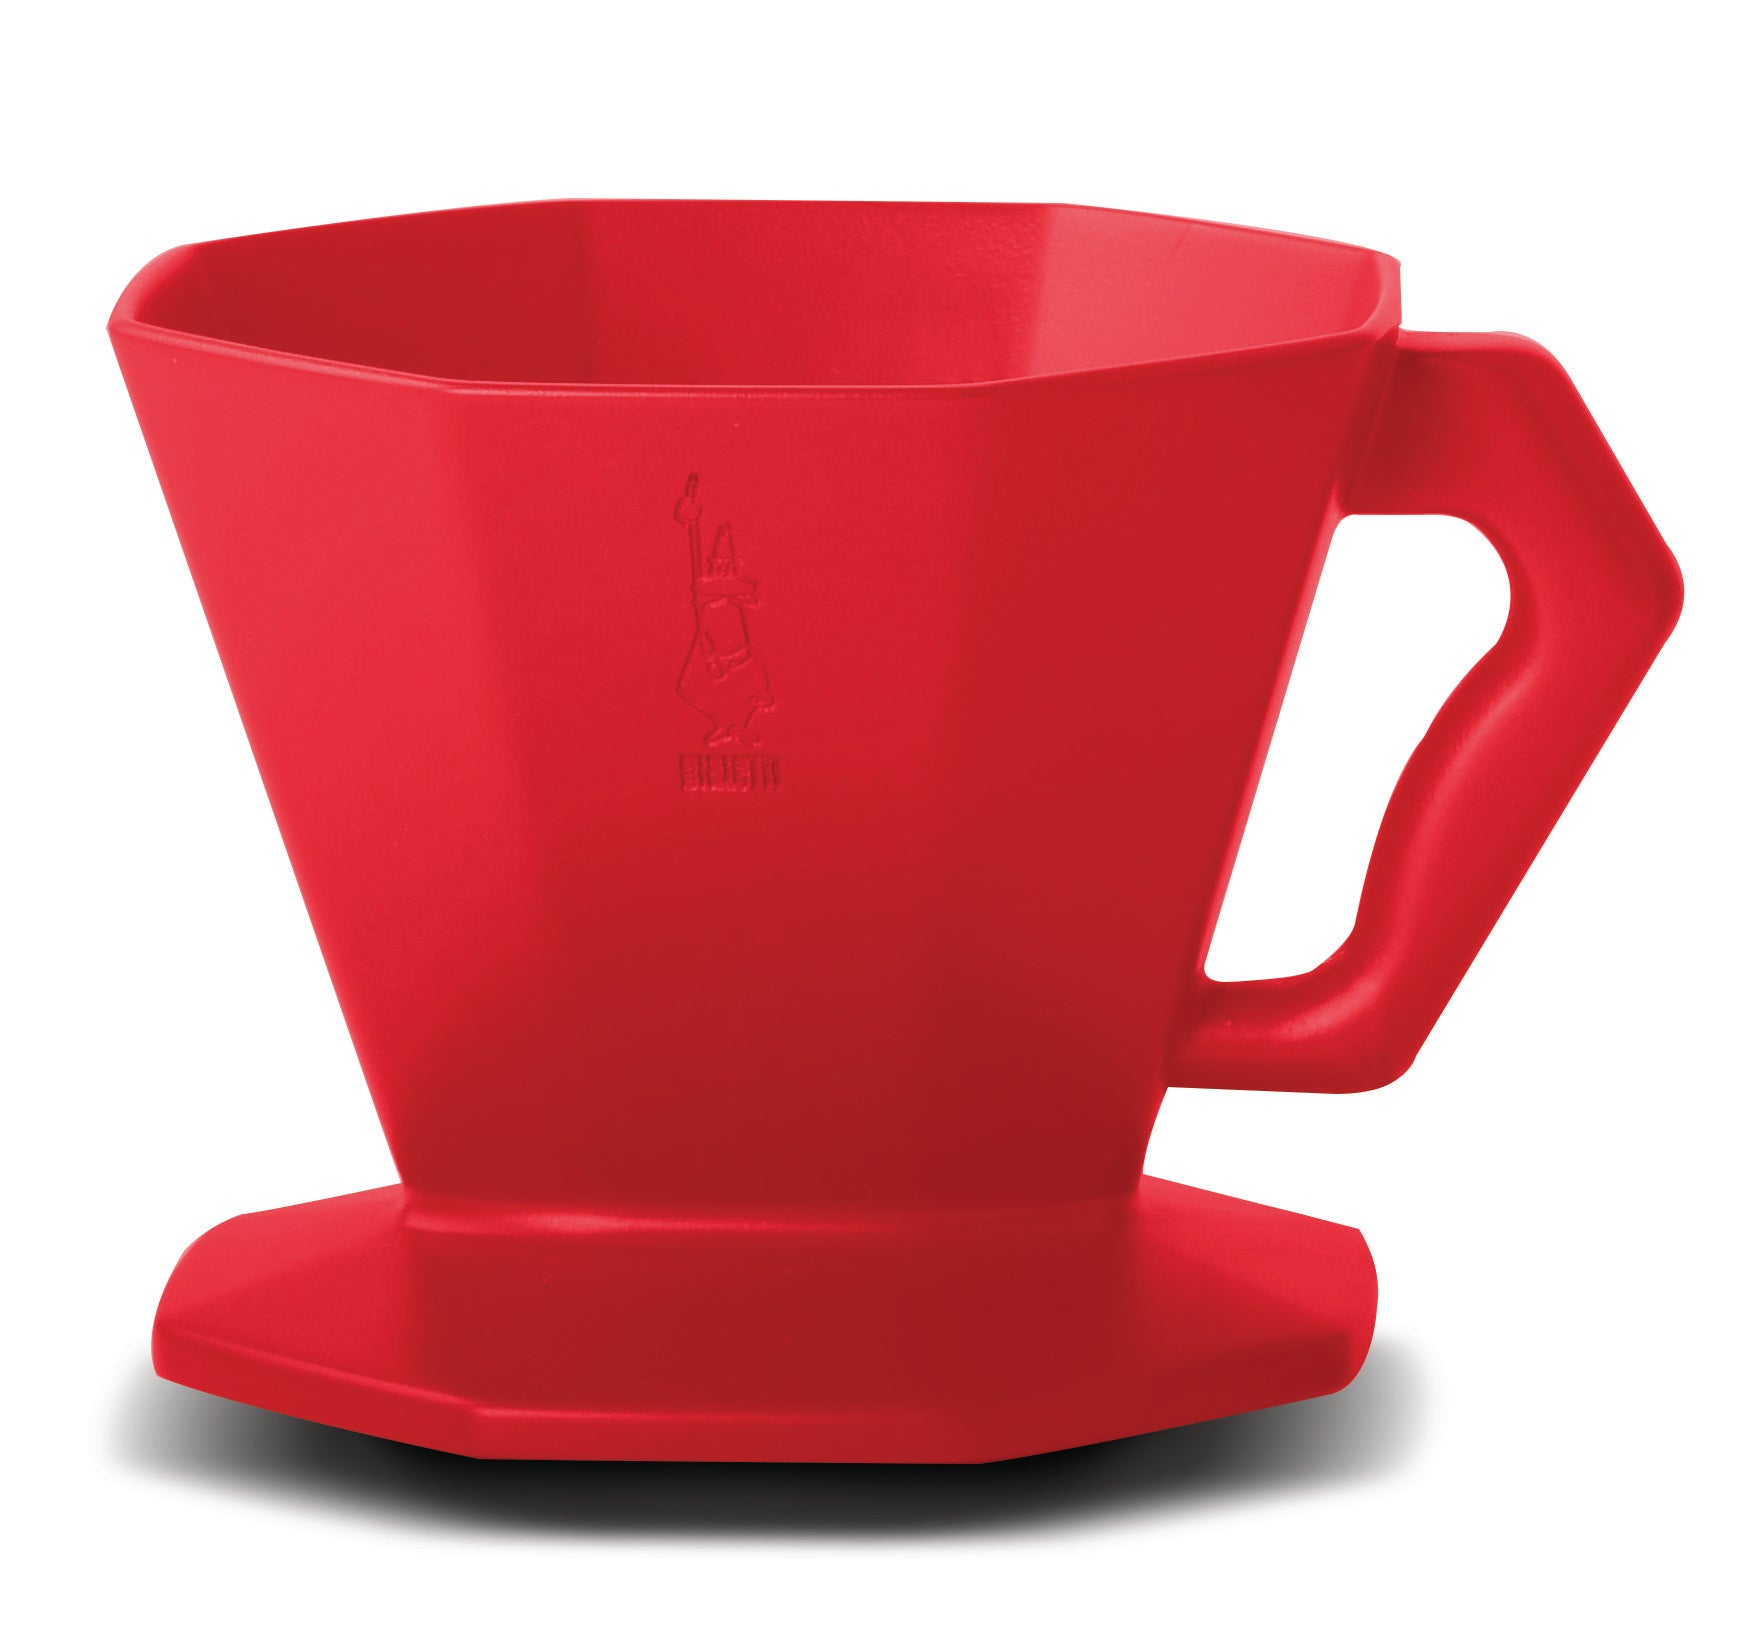 Bialetti Plastic Pour Over - Red 4 Cup